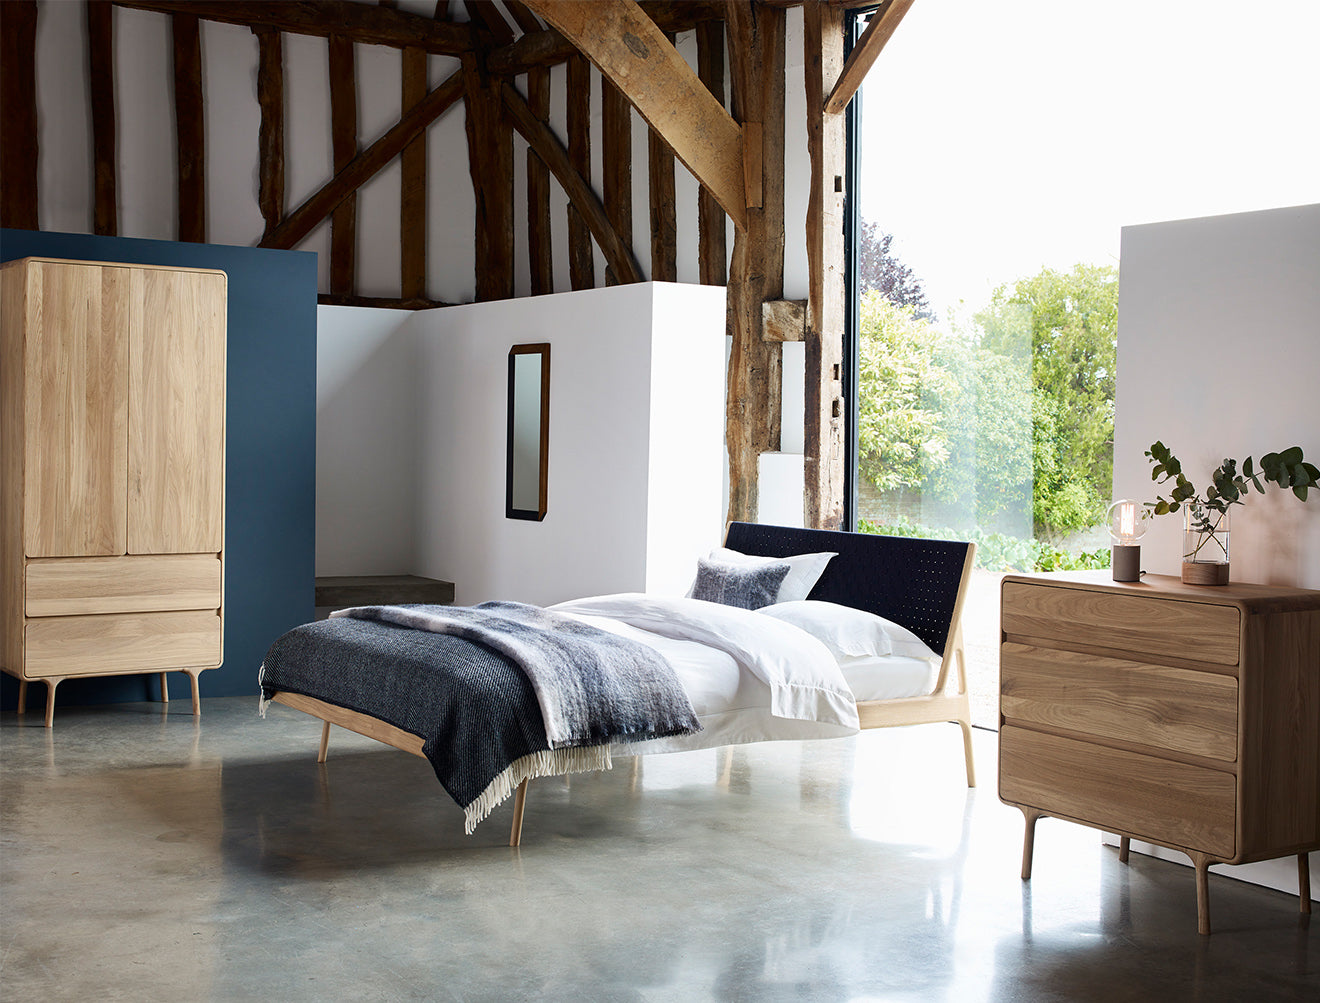 The Fawn Collection Bed, Dresser and wardrobe from Heal's AW15 collection